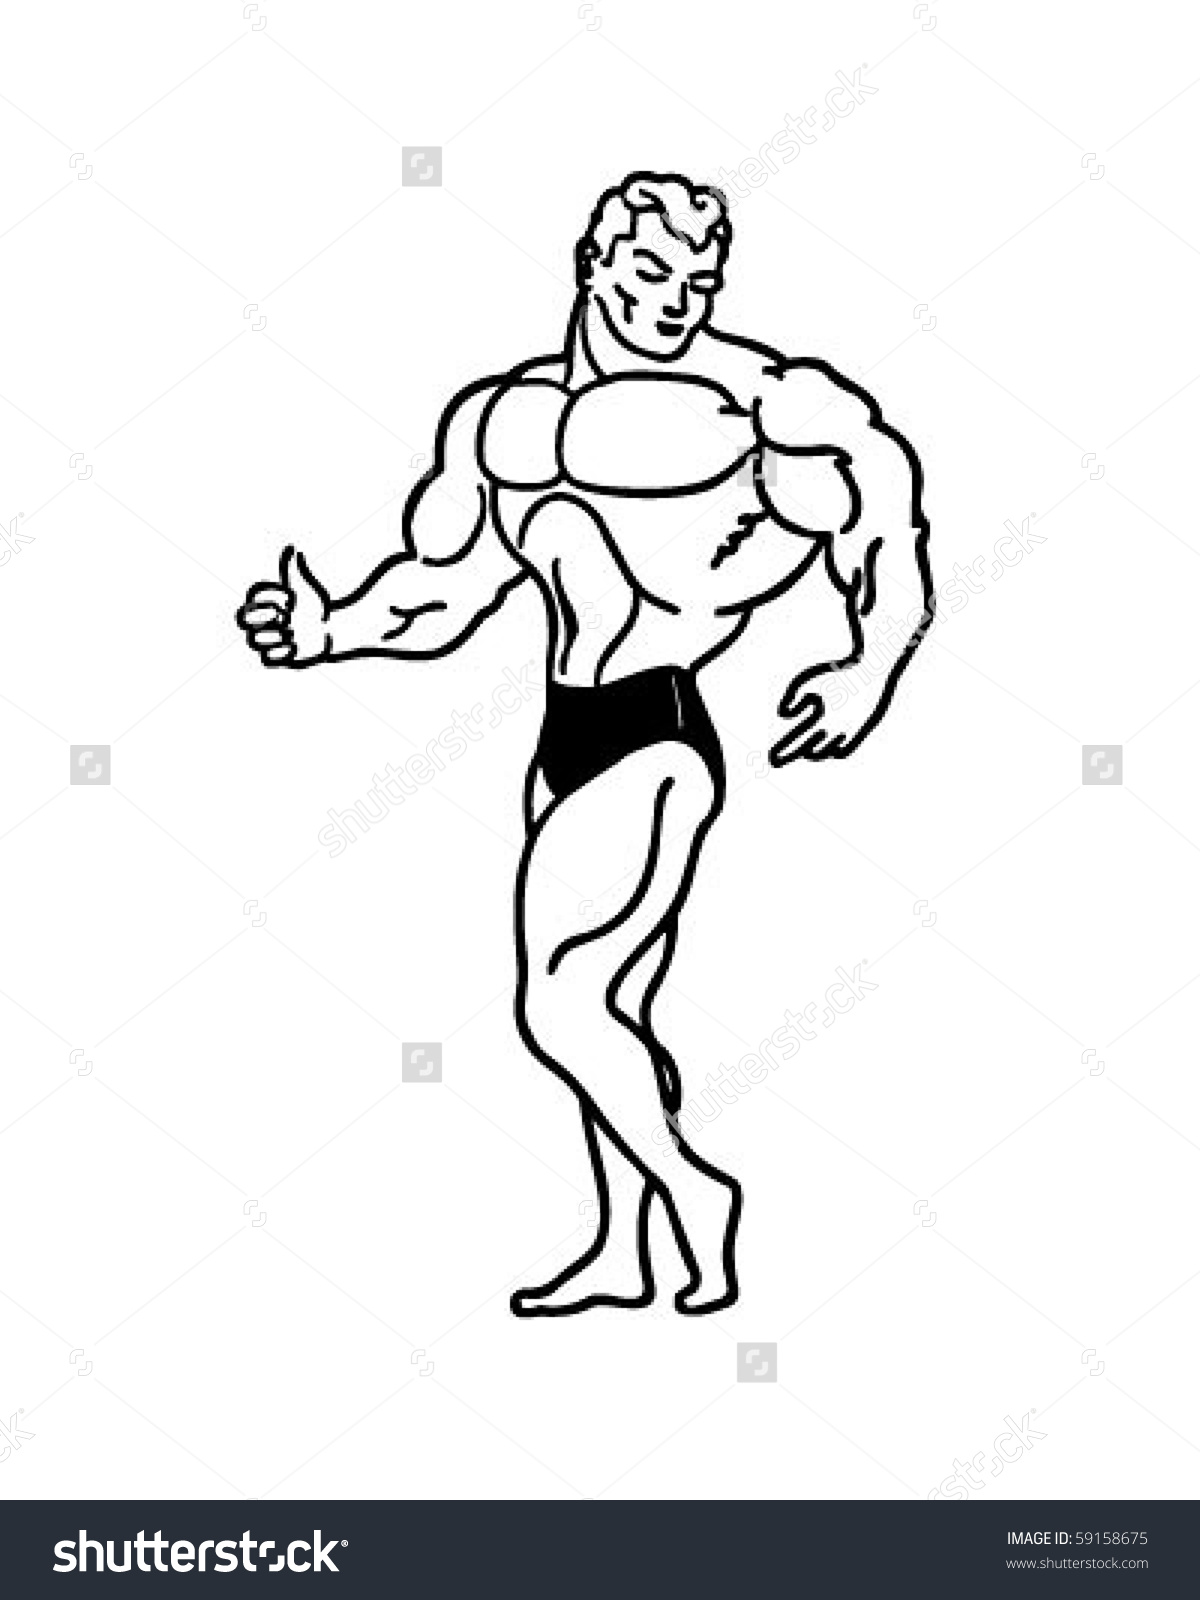 Muscle Man Clipart & Muscle Man Clip Art Images.